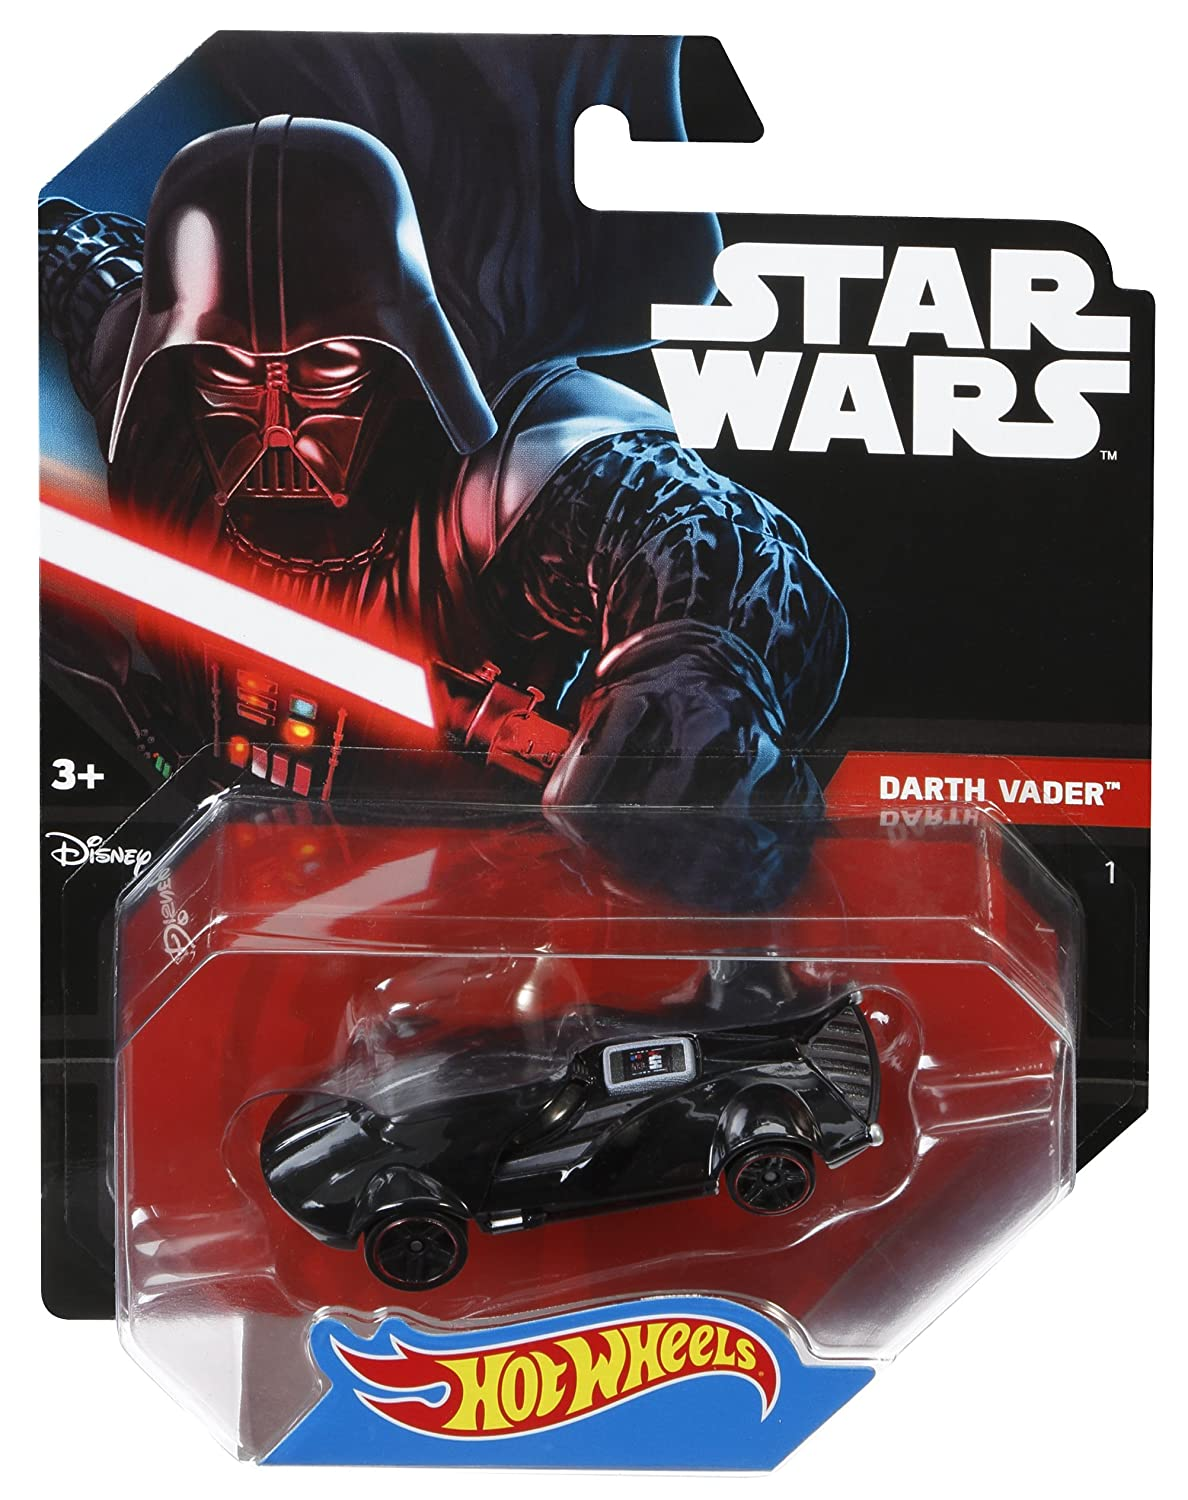 amazon com wheels star wars character car darth vader toys